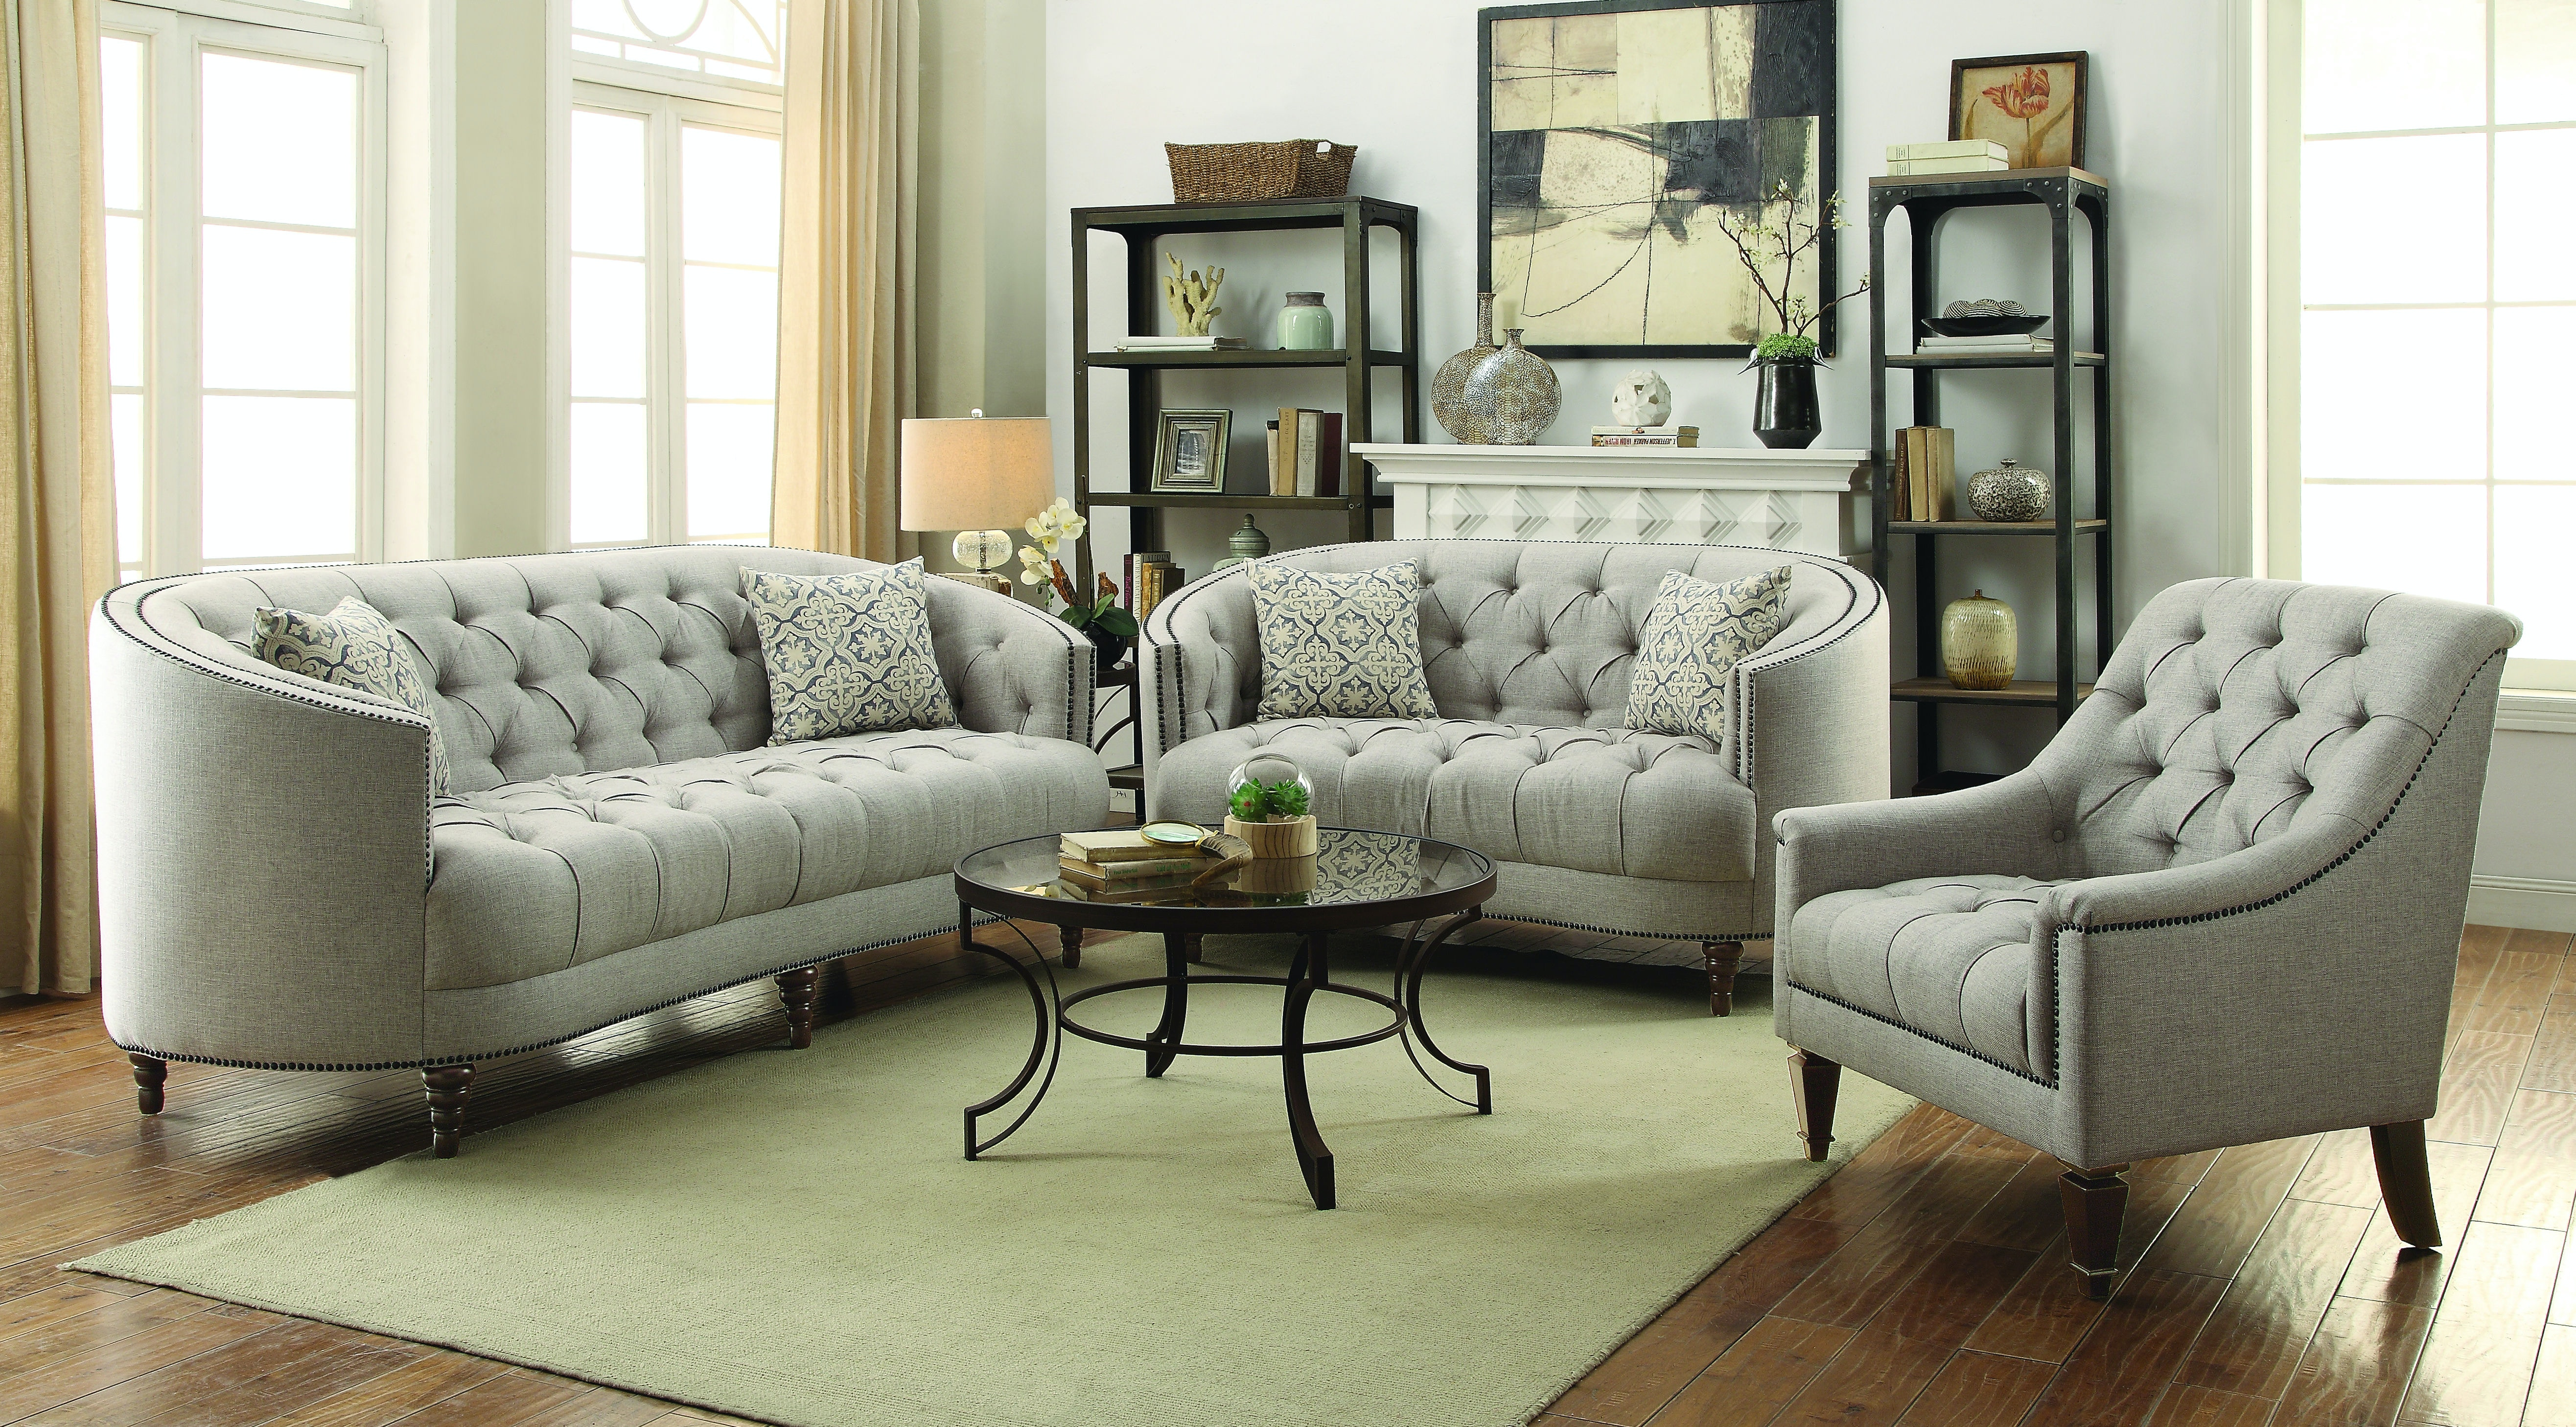 Delicieux Coaster Living Room 3 Pc Set 505641 S3 At Gallery Furniture Of Central  Florida